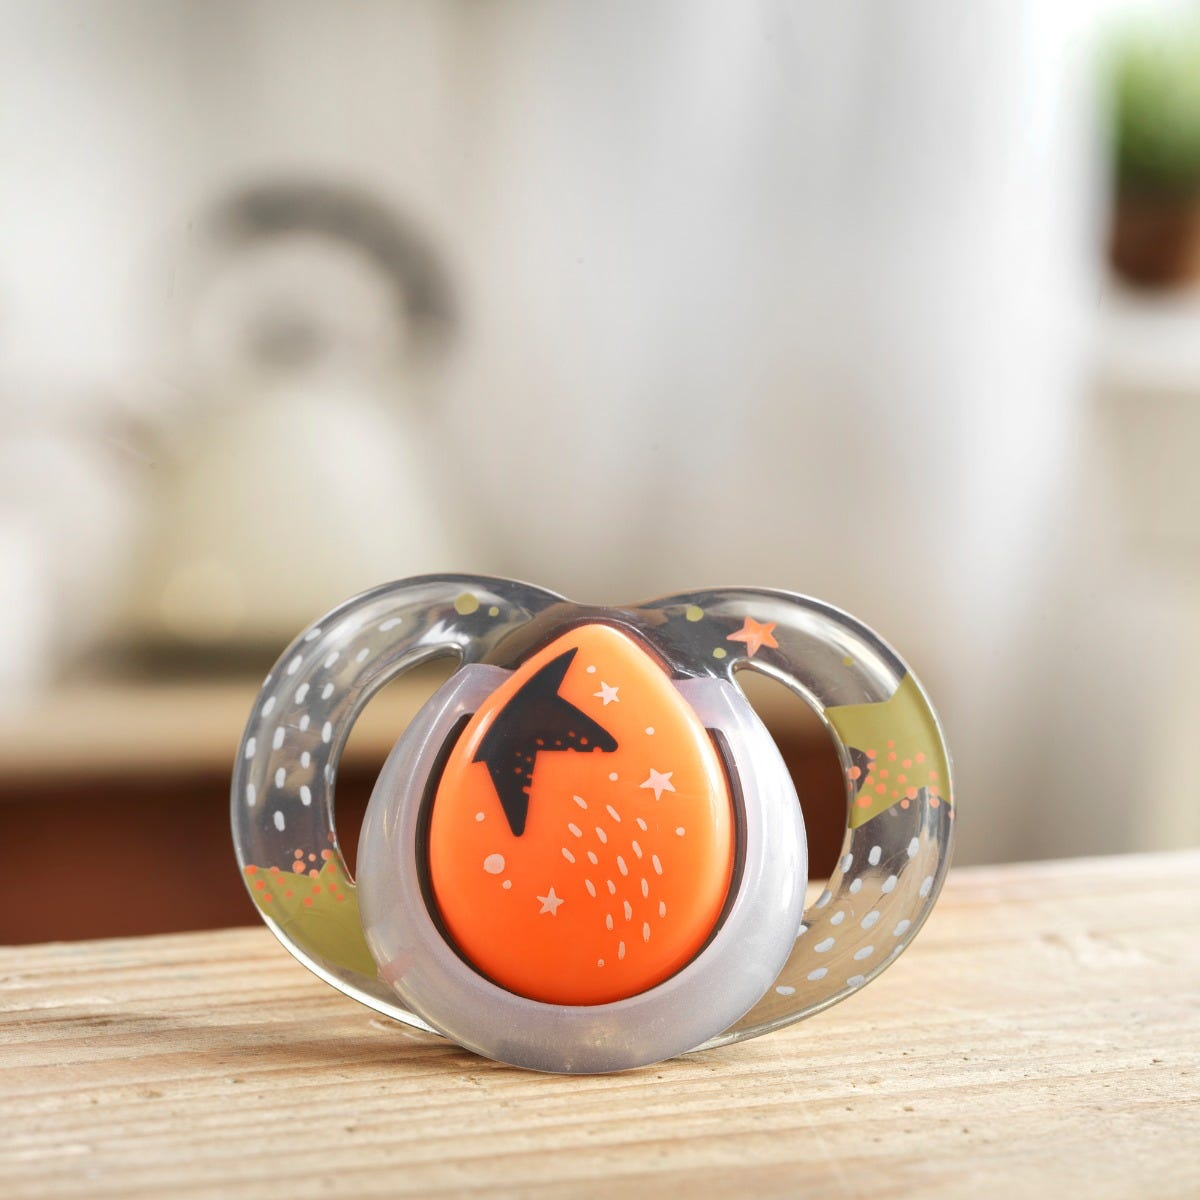 6-18-grey-and-orange-night-soother-on-countertop